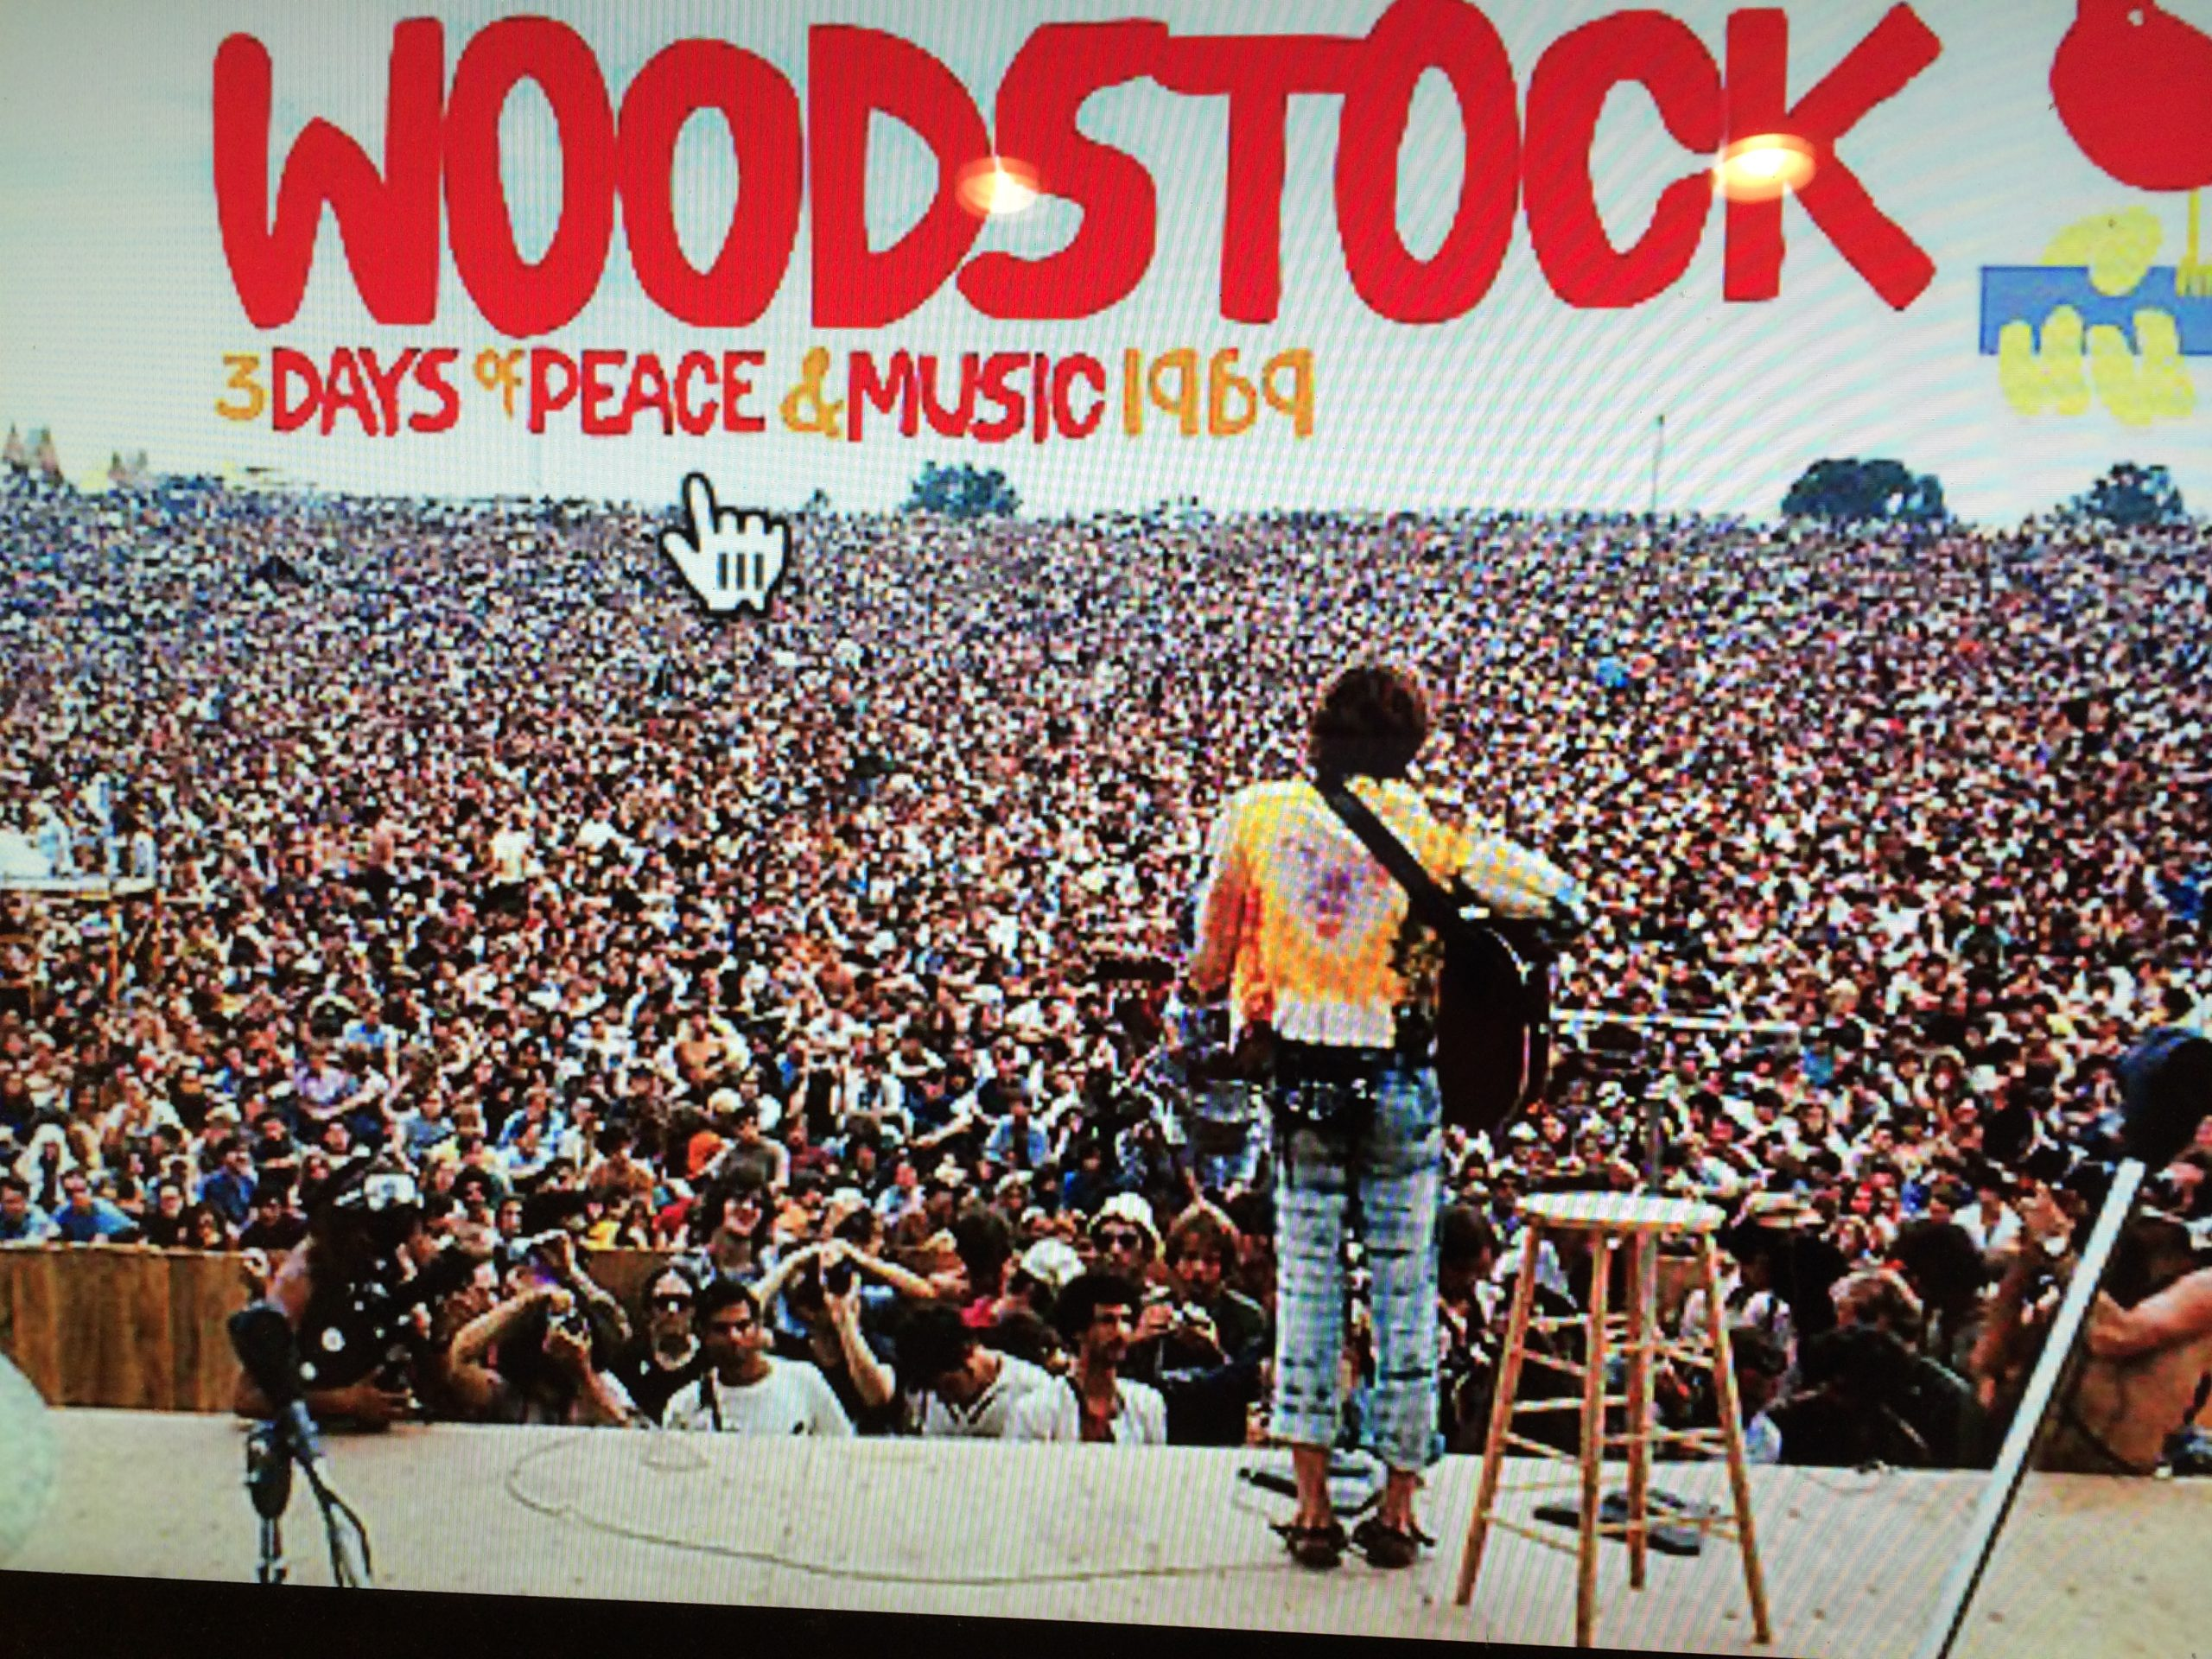 WOODSTOCK 2019 : IT COULD BE HAPPENING!!!